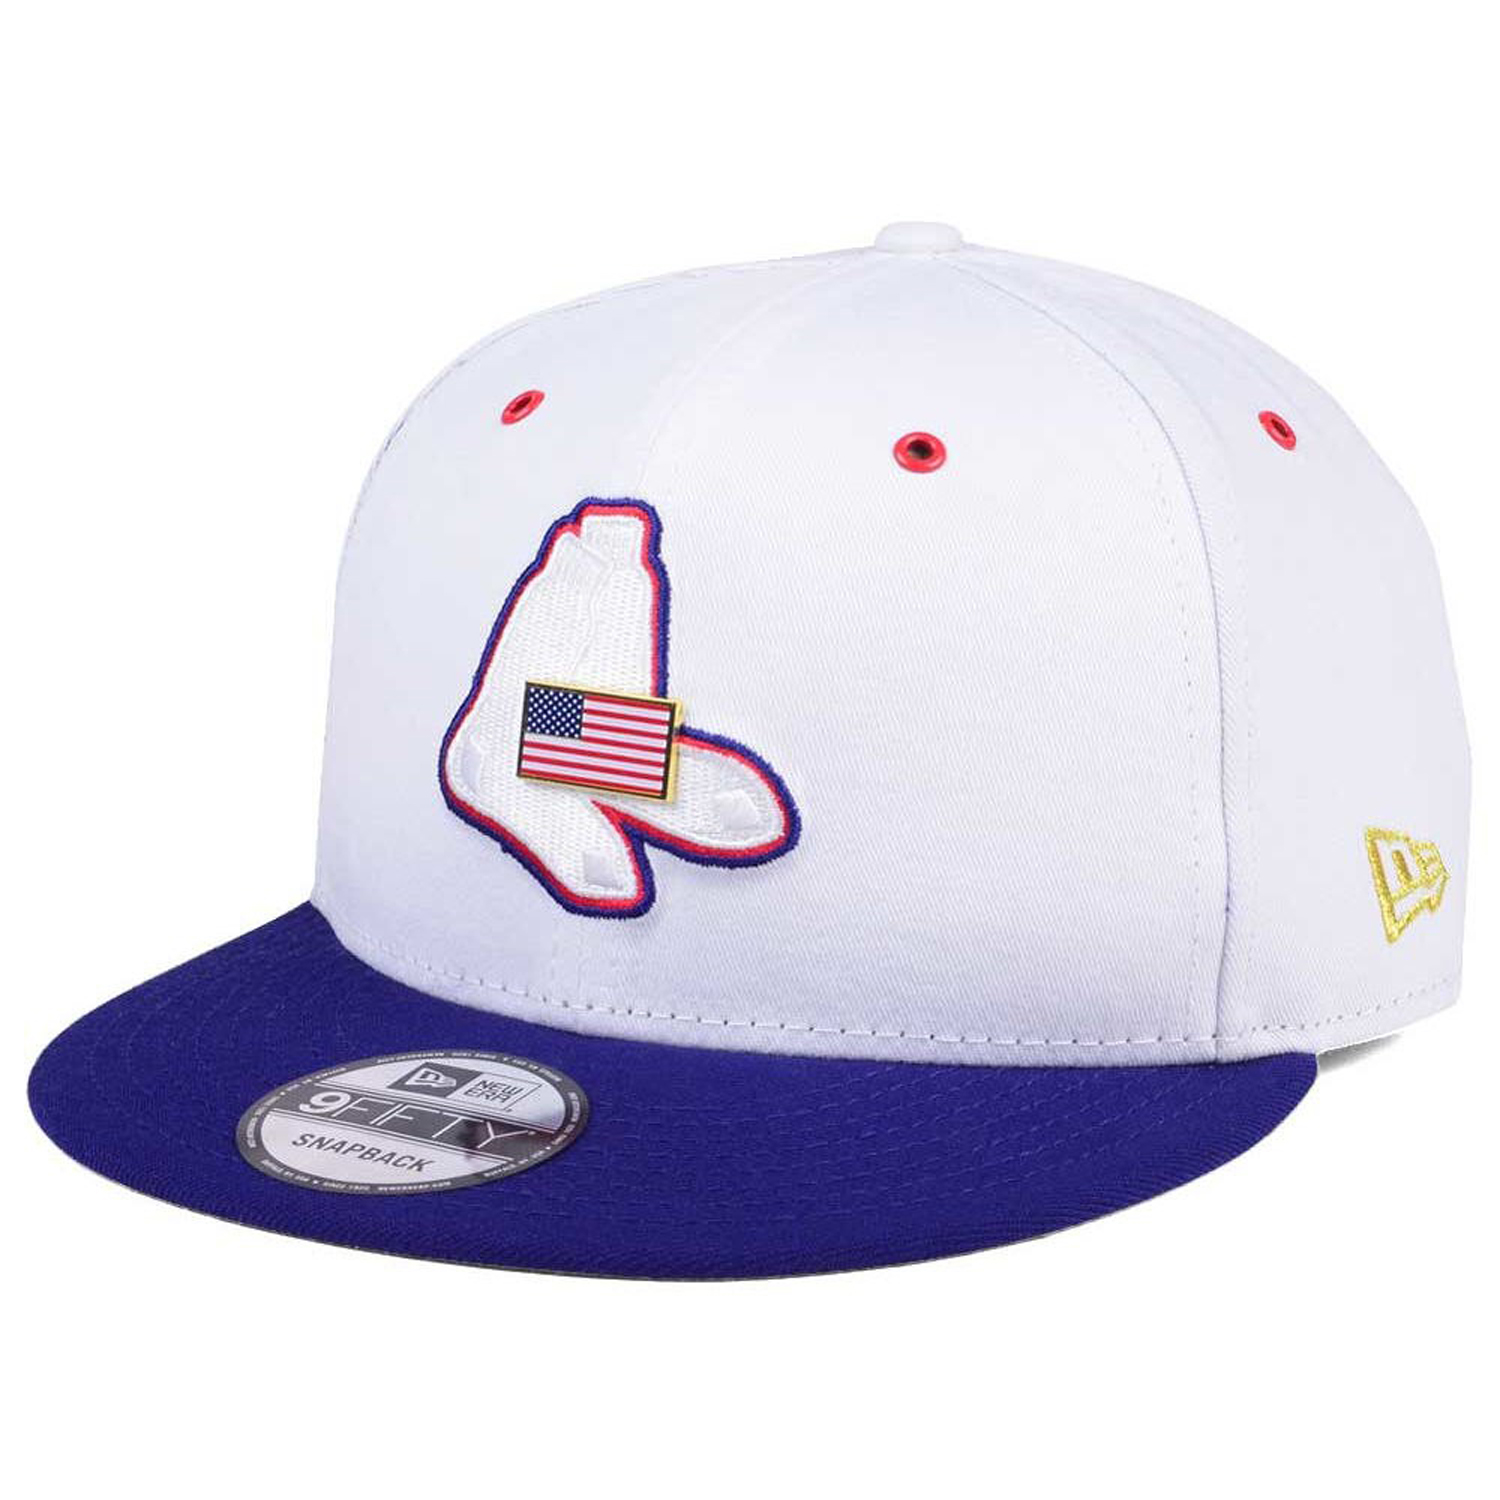 2069cbf2a71241 Details about New Era Boston Red Sox Metal Pin USA American Flag 9Fifty  Snapback Cap Hat